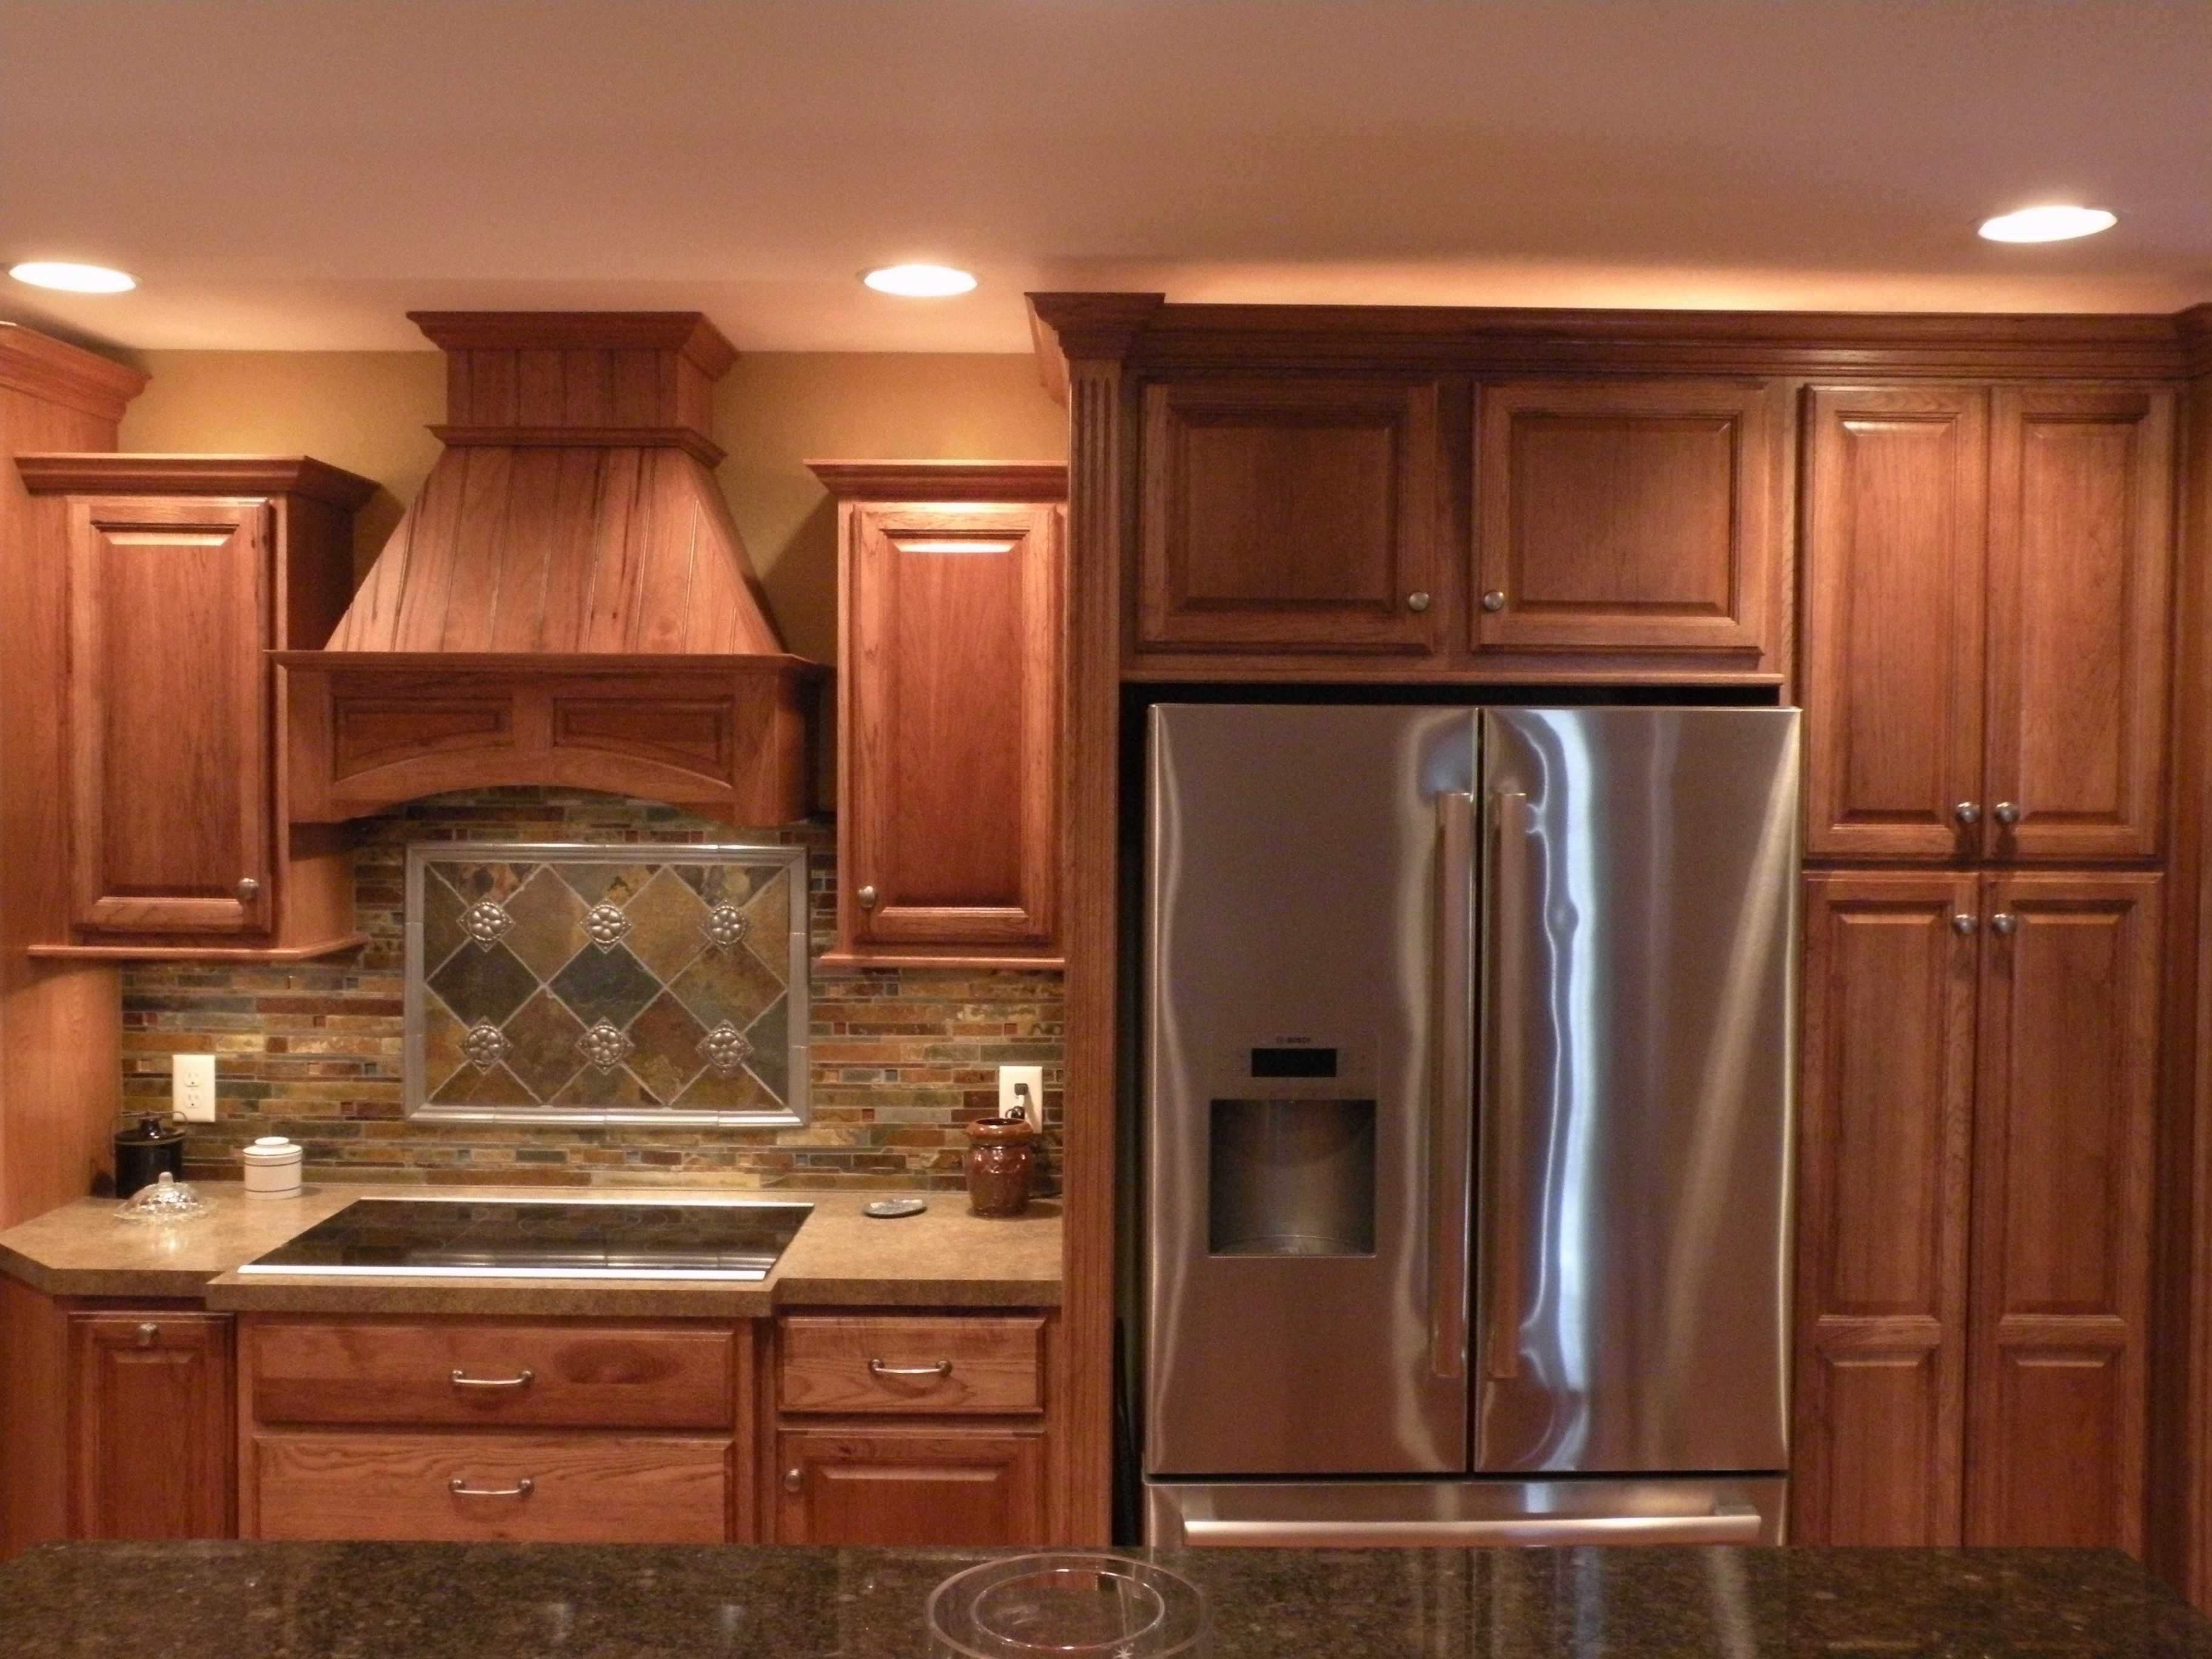 Furniture Make A Wonderful Kitchen By Using Kraftmaid From Kitchen Craft Cabinets Reviews Kitchen Craft Cabinets Kitchen Crafts Kitchen